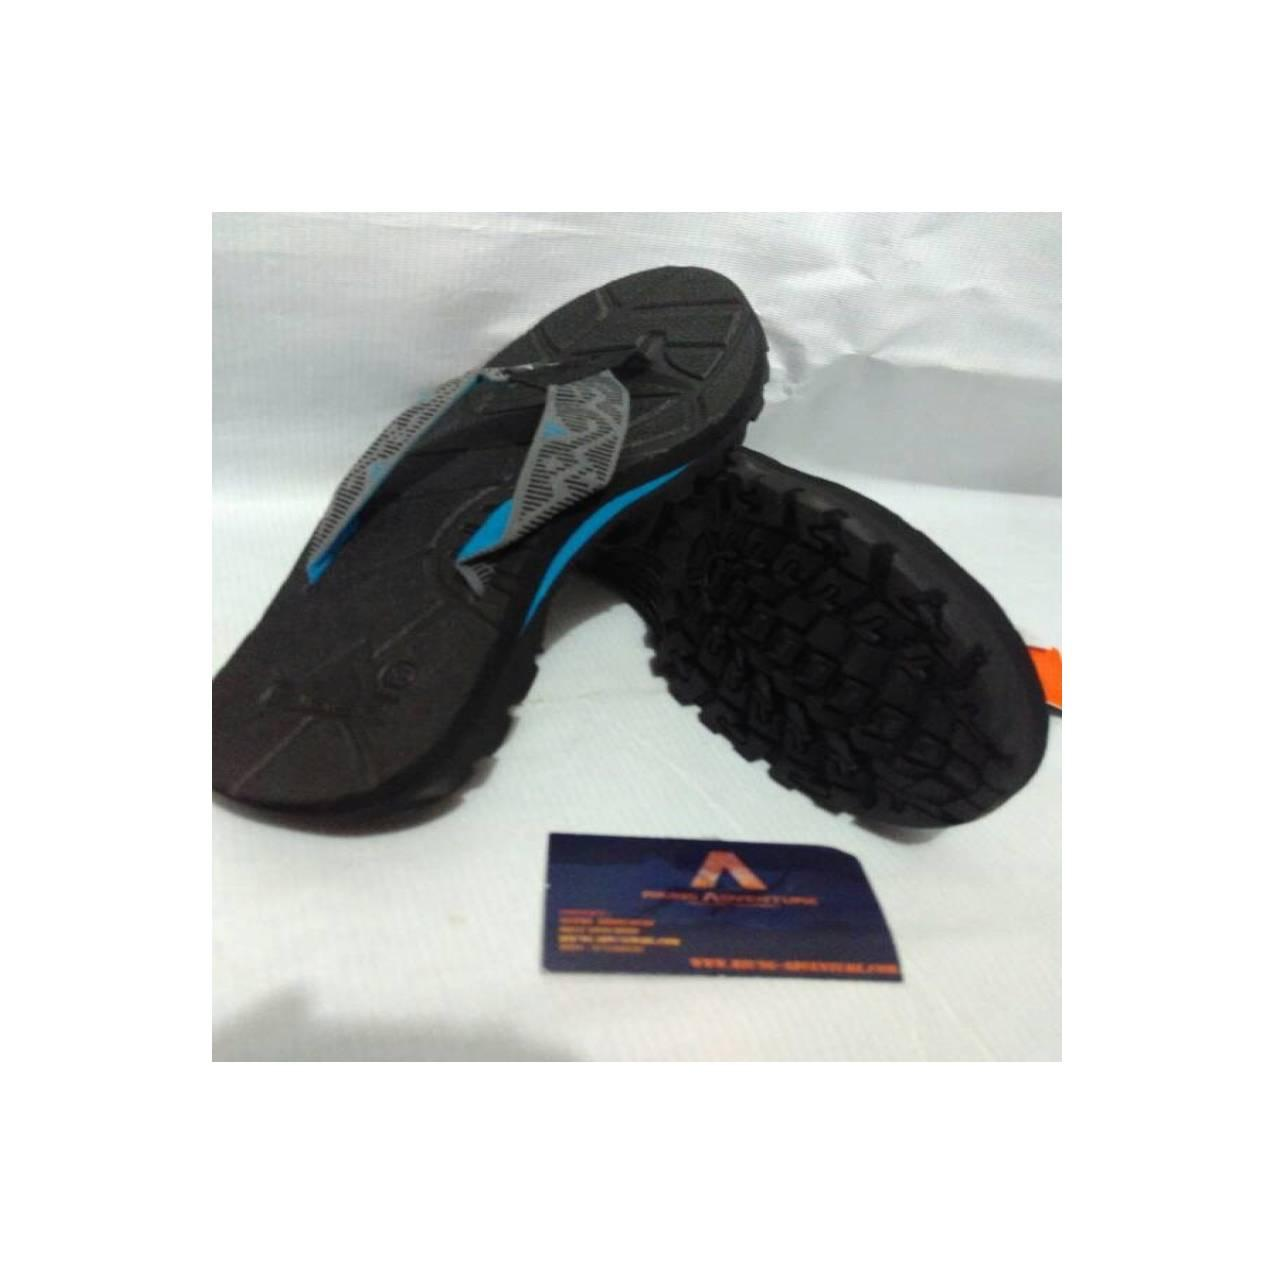 NEW - SANDAL GUNUNG EIGER S 140 LIGHT SPEED CLIP